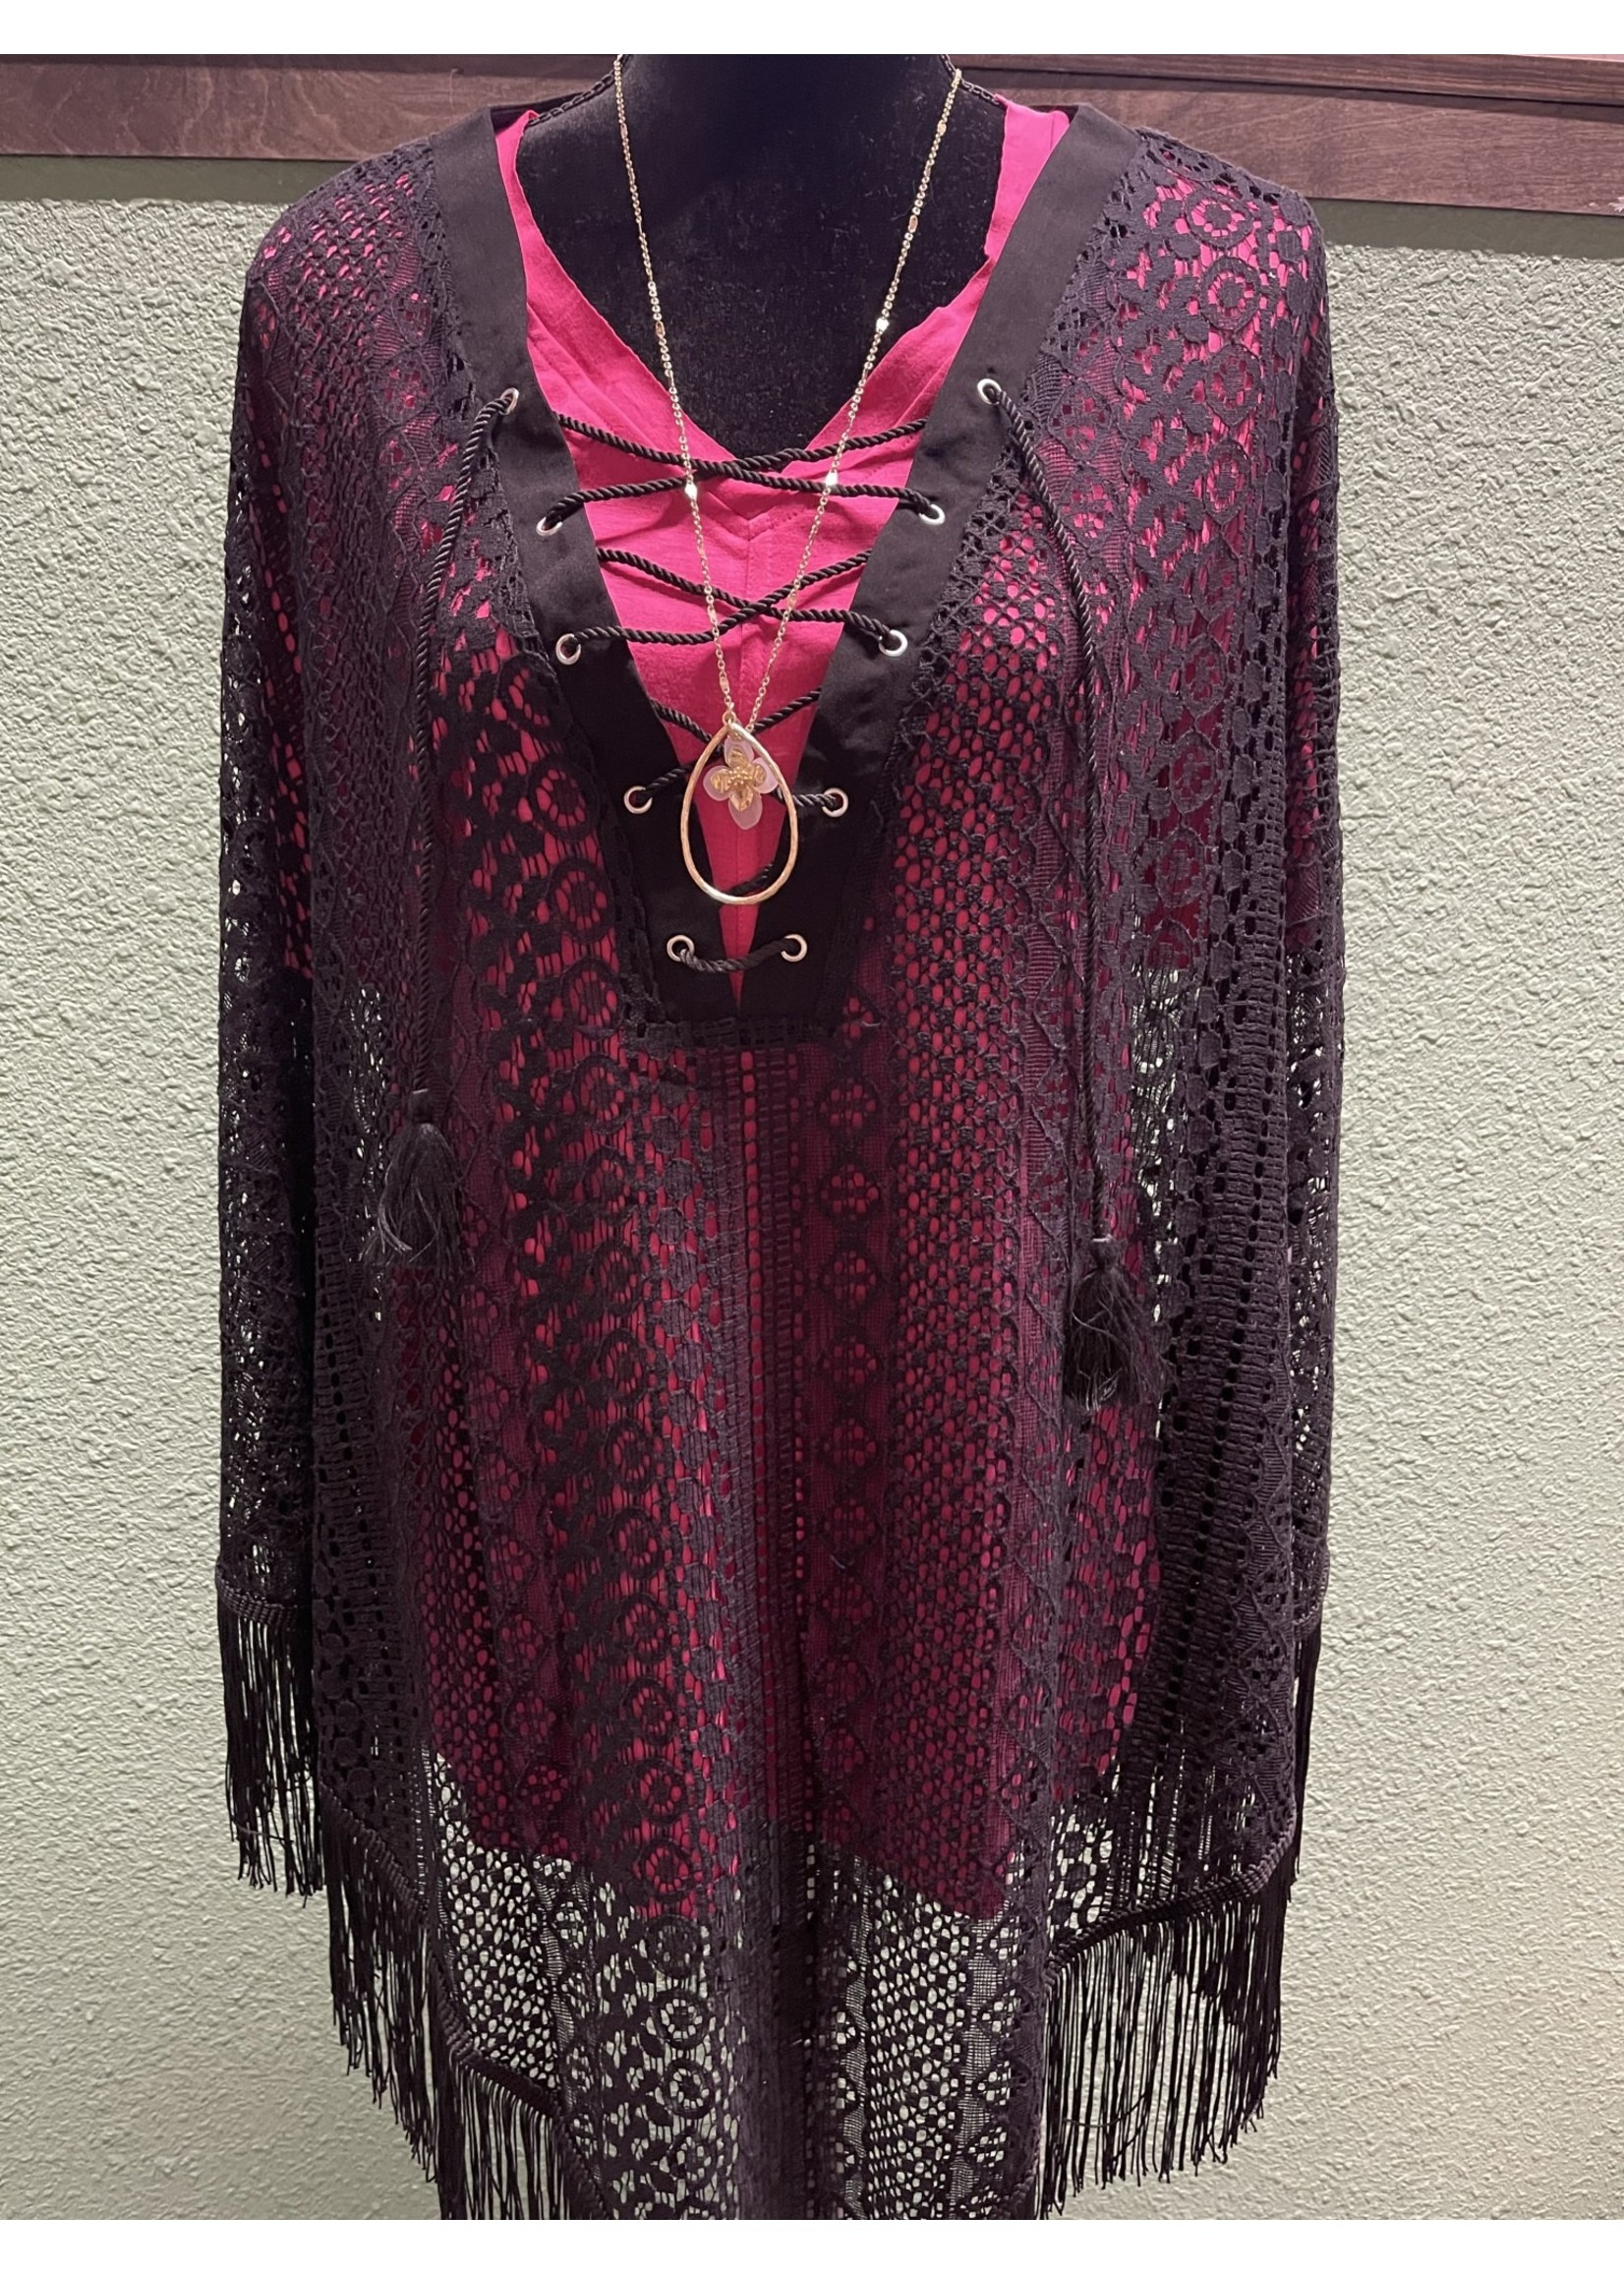 SIMPLY NOELLE WHISK ME AWAY LACE PONCHO XXL BLACK